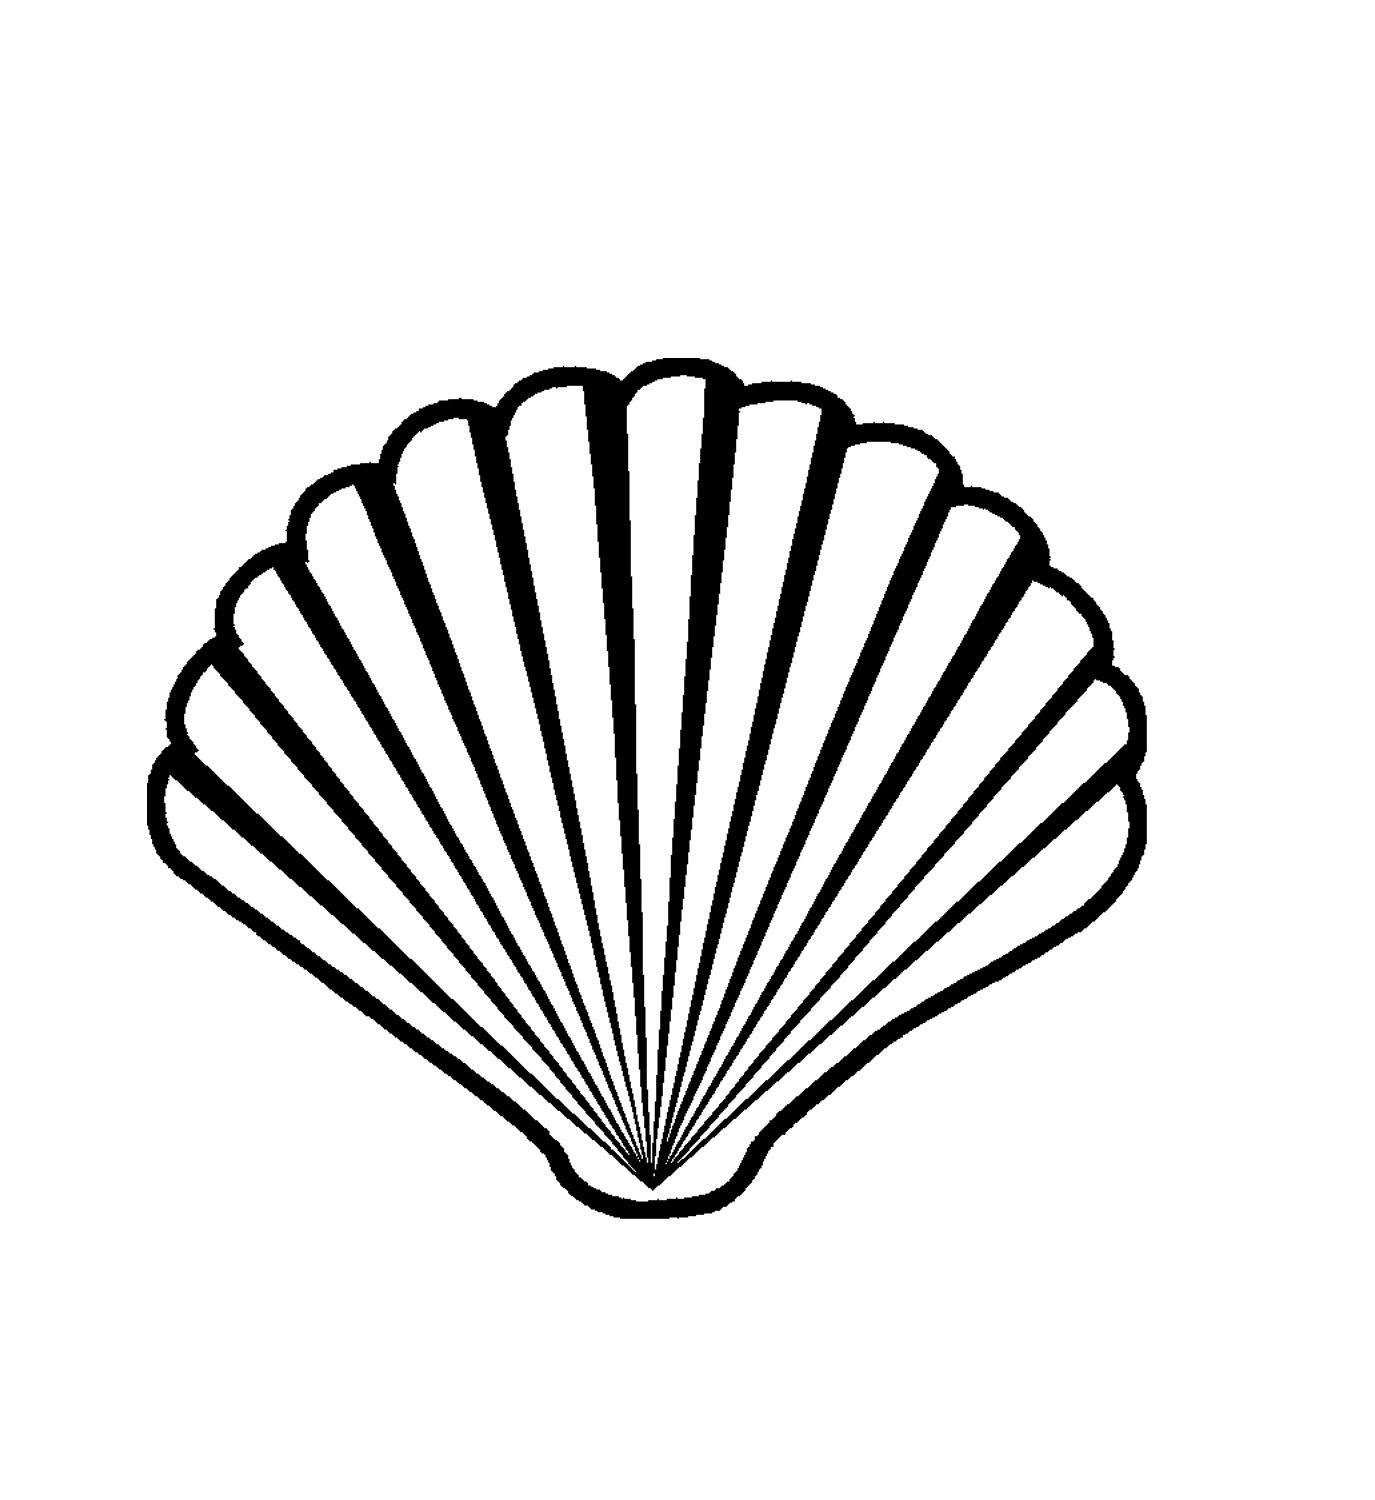 Scallop shell love pinterest scallop shells and tattoo scallop shell biocorpaavc Image collections